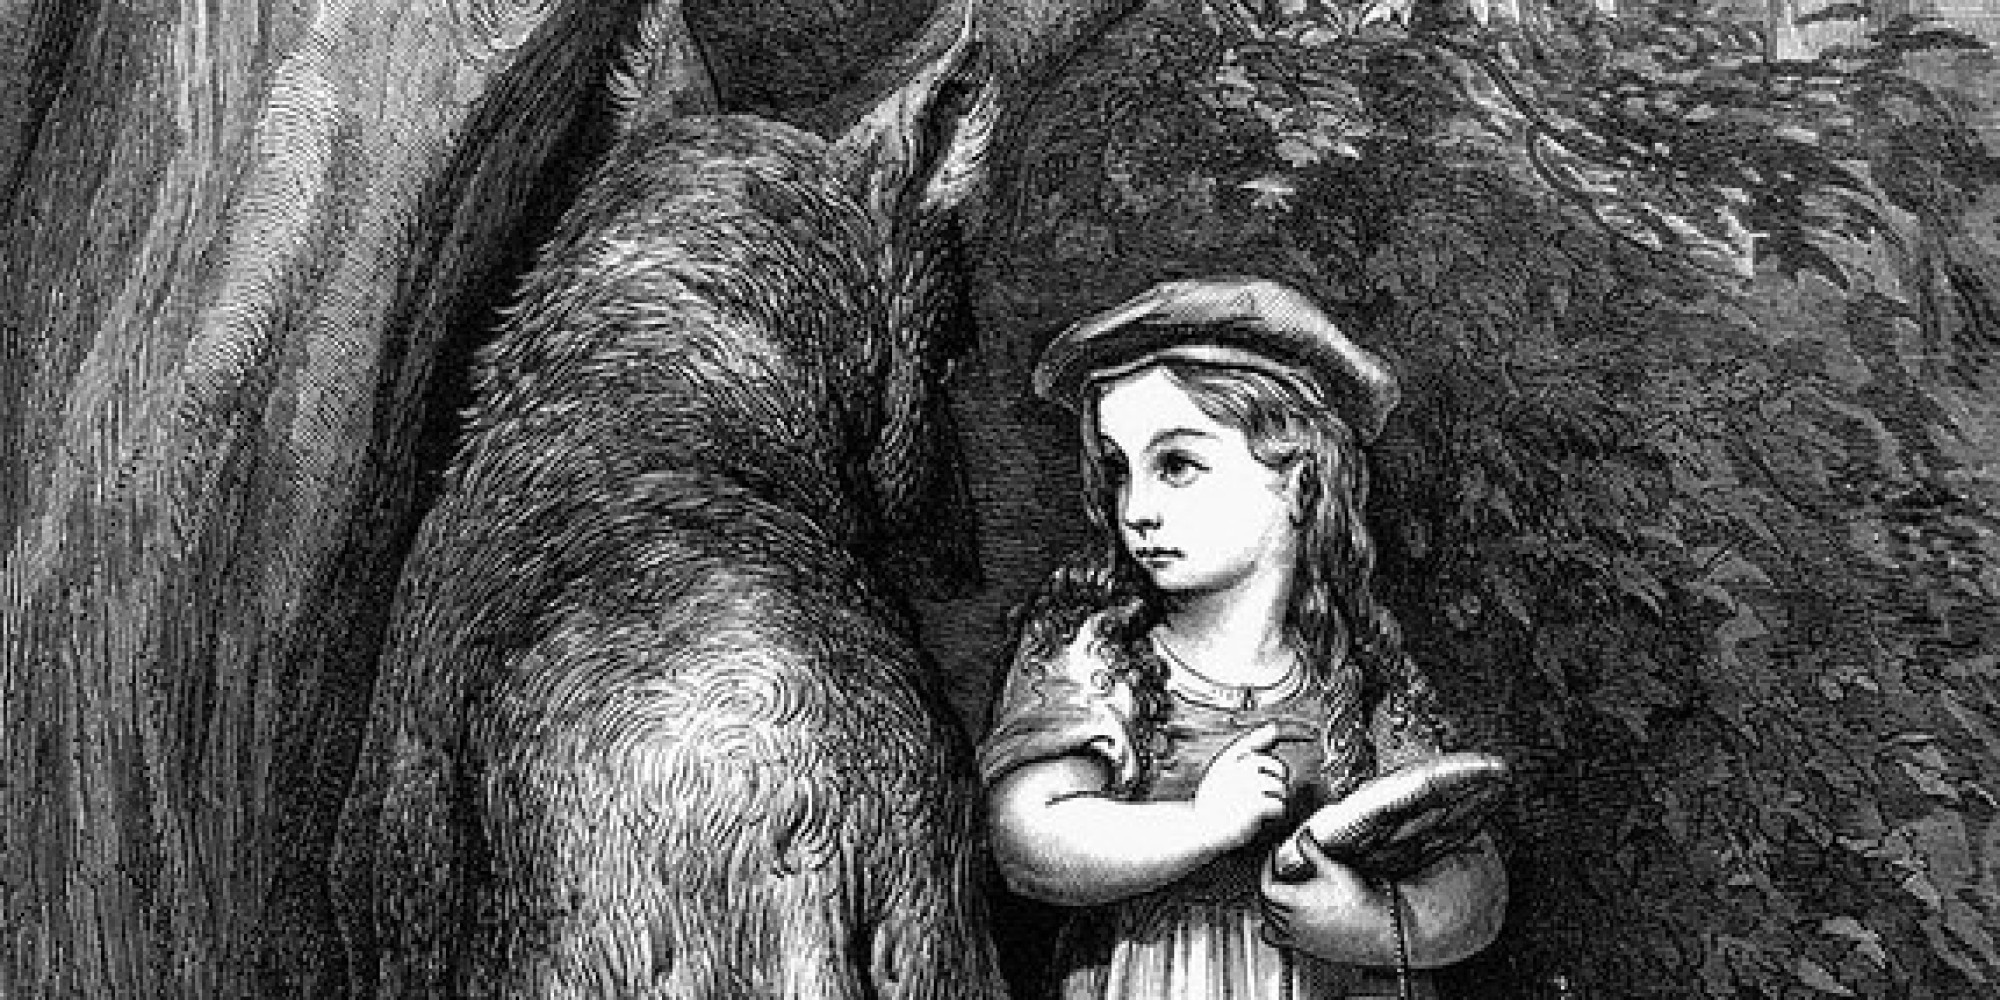 analysis of little red riding hood [insertnamehere] ms g wpow 6-15-2012 introduction global features global features are overarching themes or elements that are incorporated through the entire article.